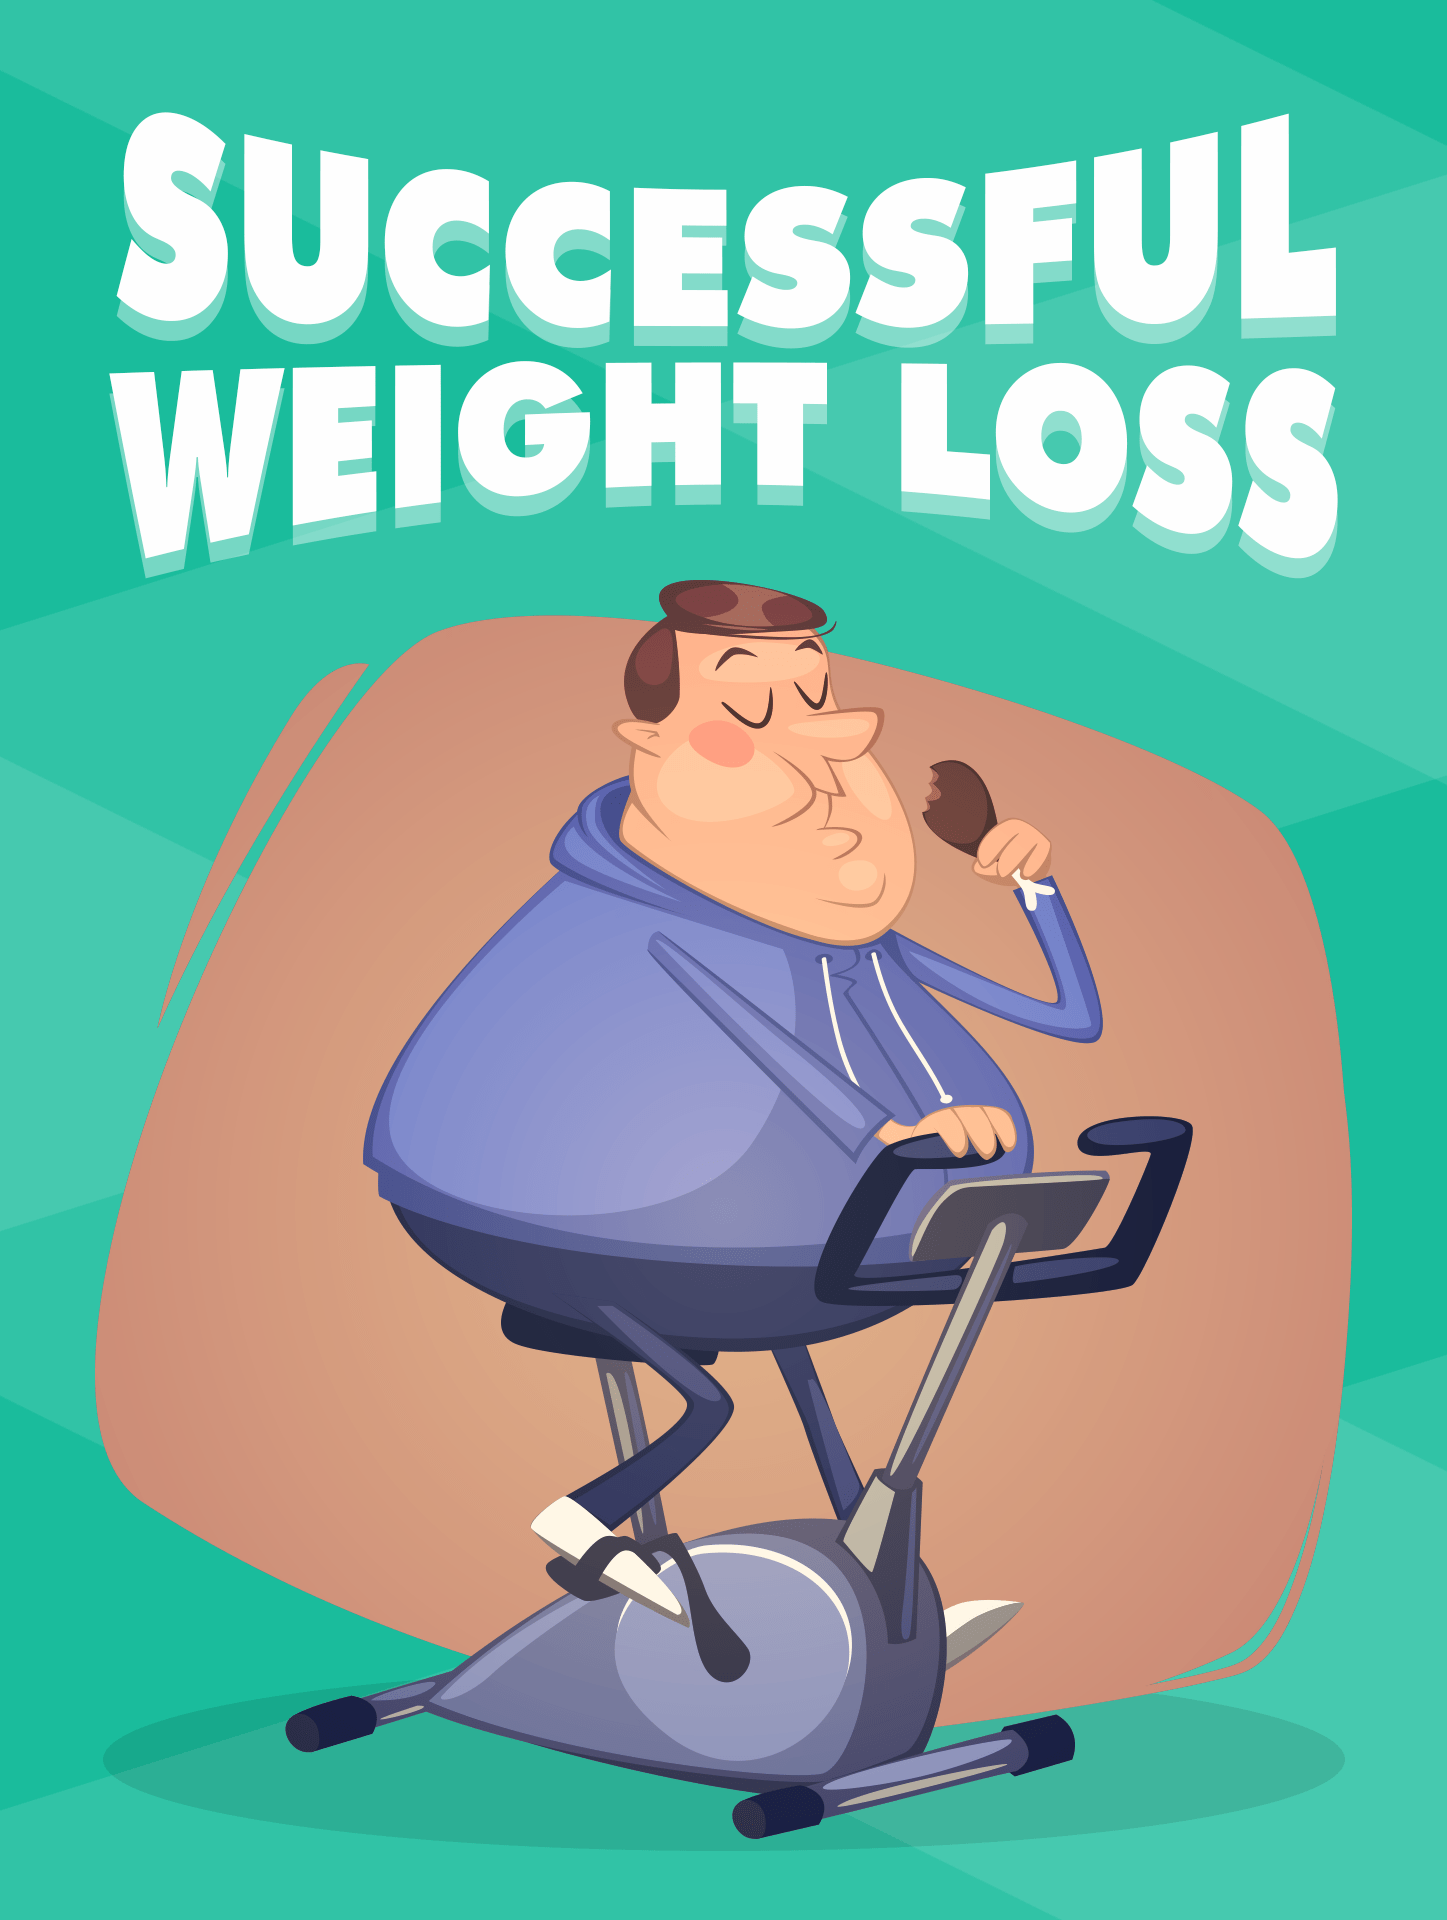 weight loss tips | Complete eBook for your fulfilling every needs | Get Now |